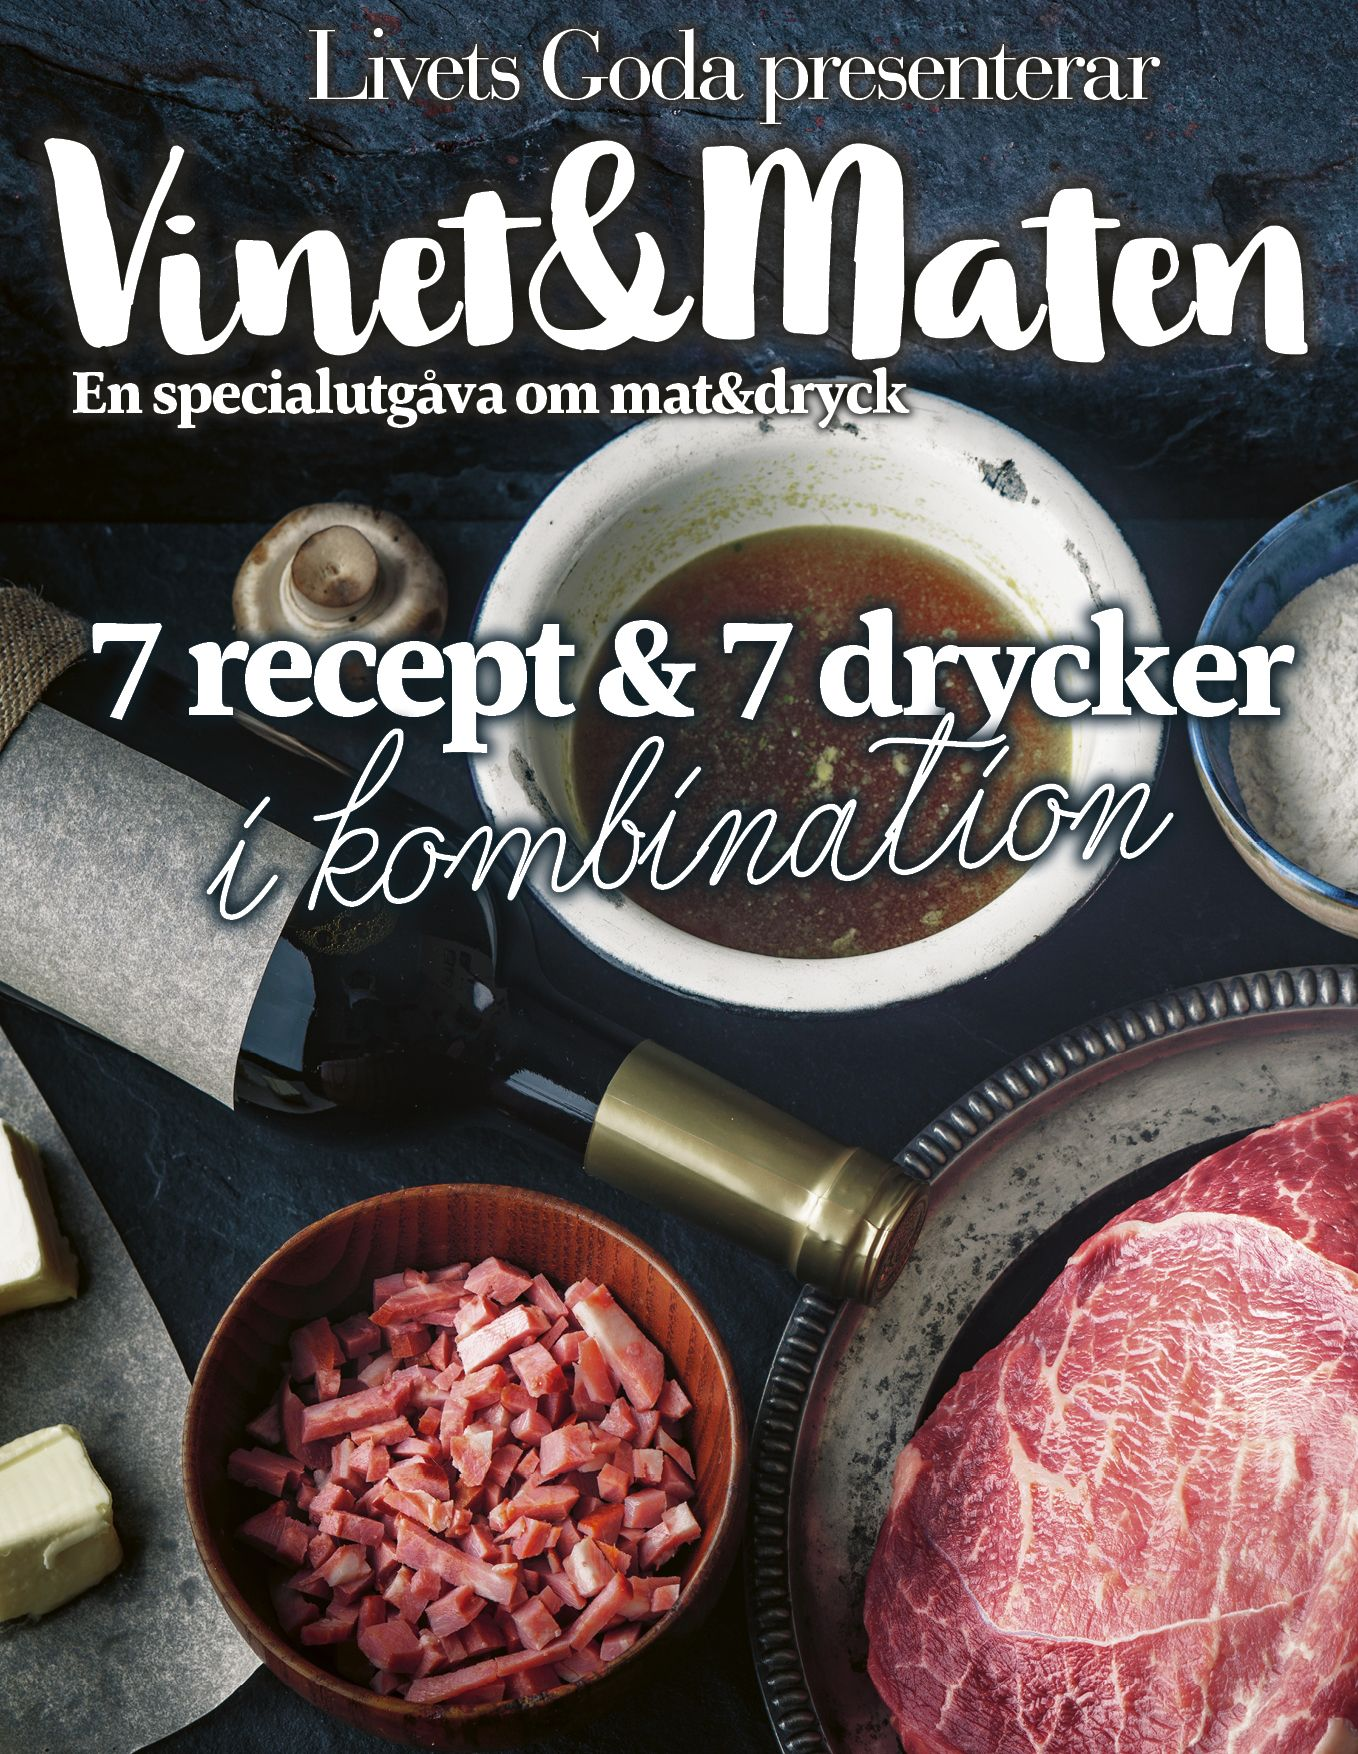 Vinet&Maten September